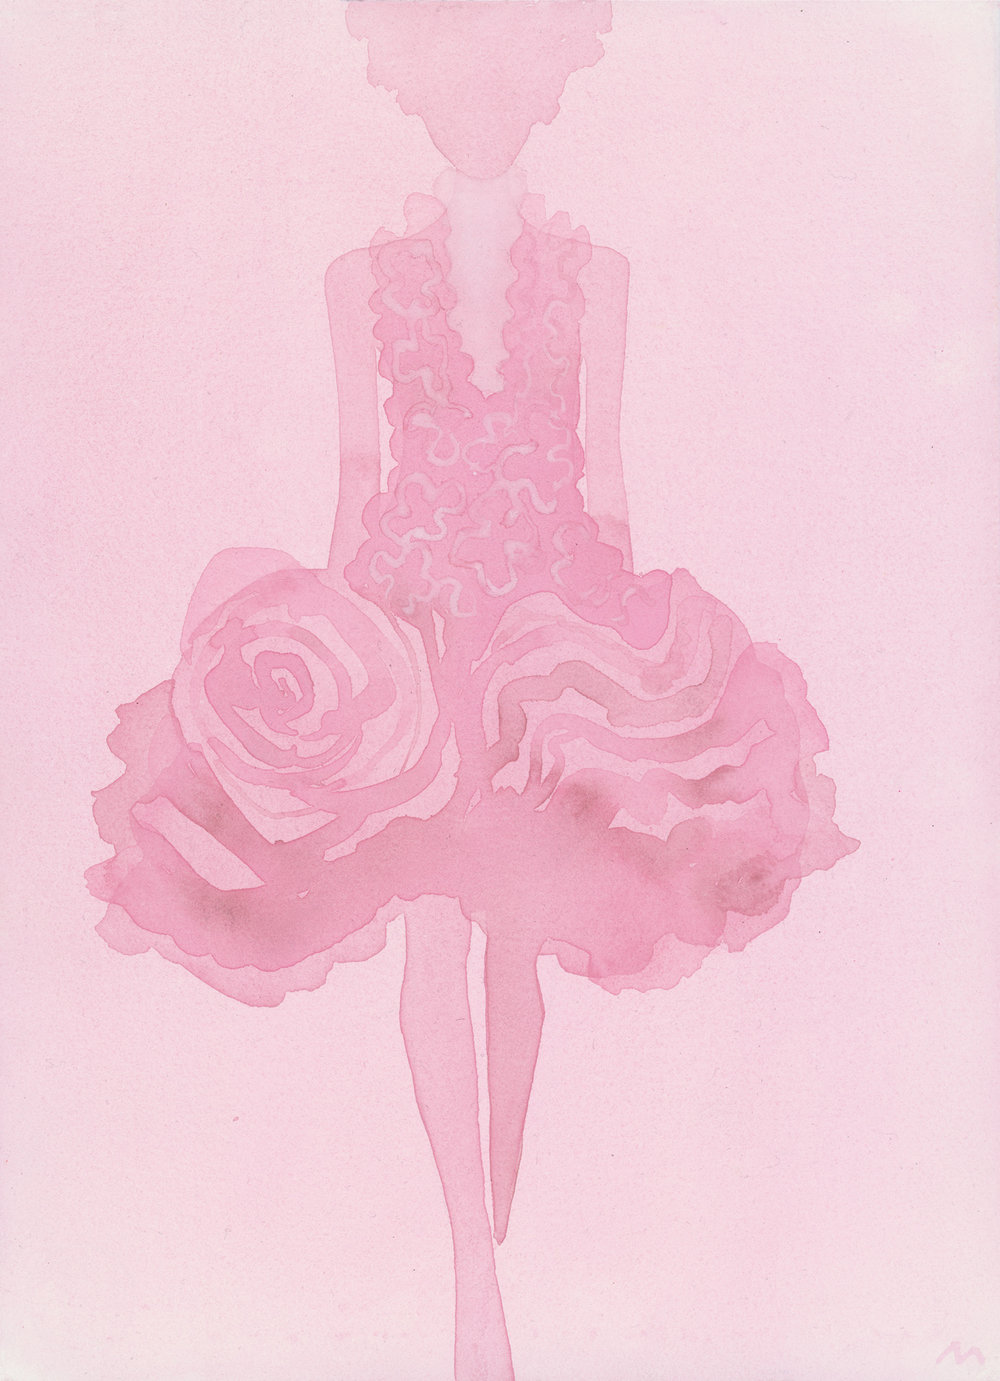 Mats Gustafson   Rose (Dress by Alexander McQueen)  For The Last Magazine Issue No 15 2015 Watercolor 45 x 33 cm